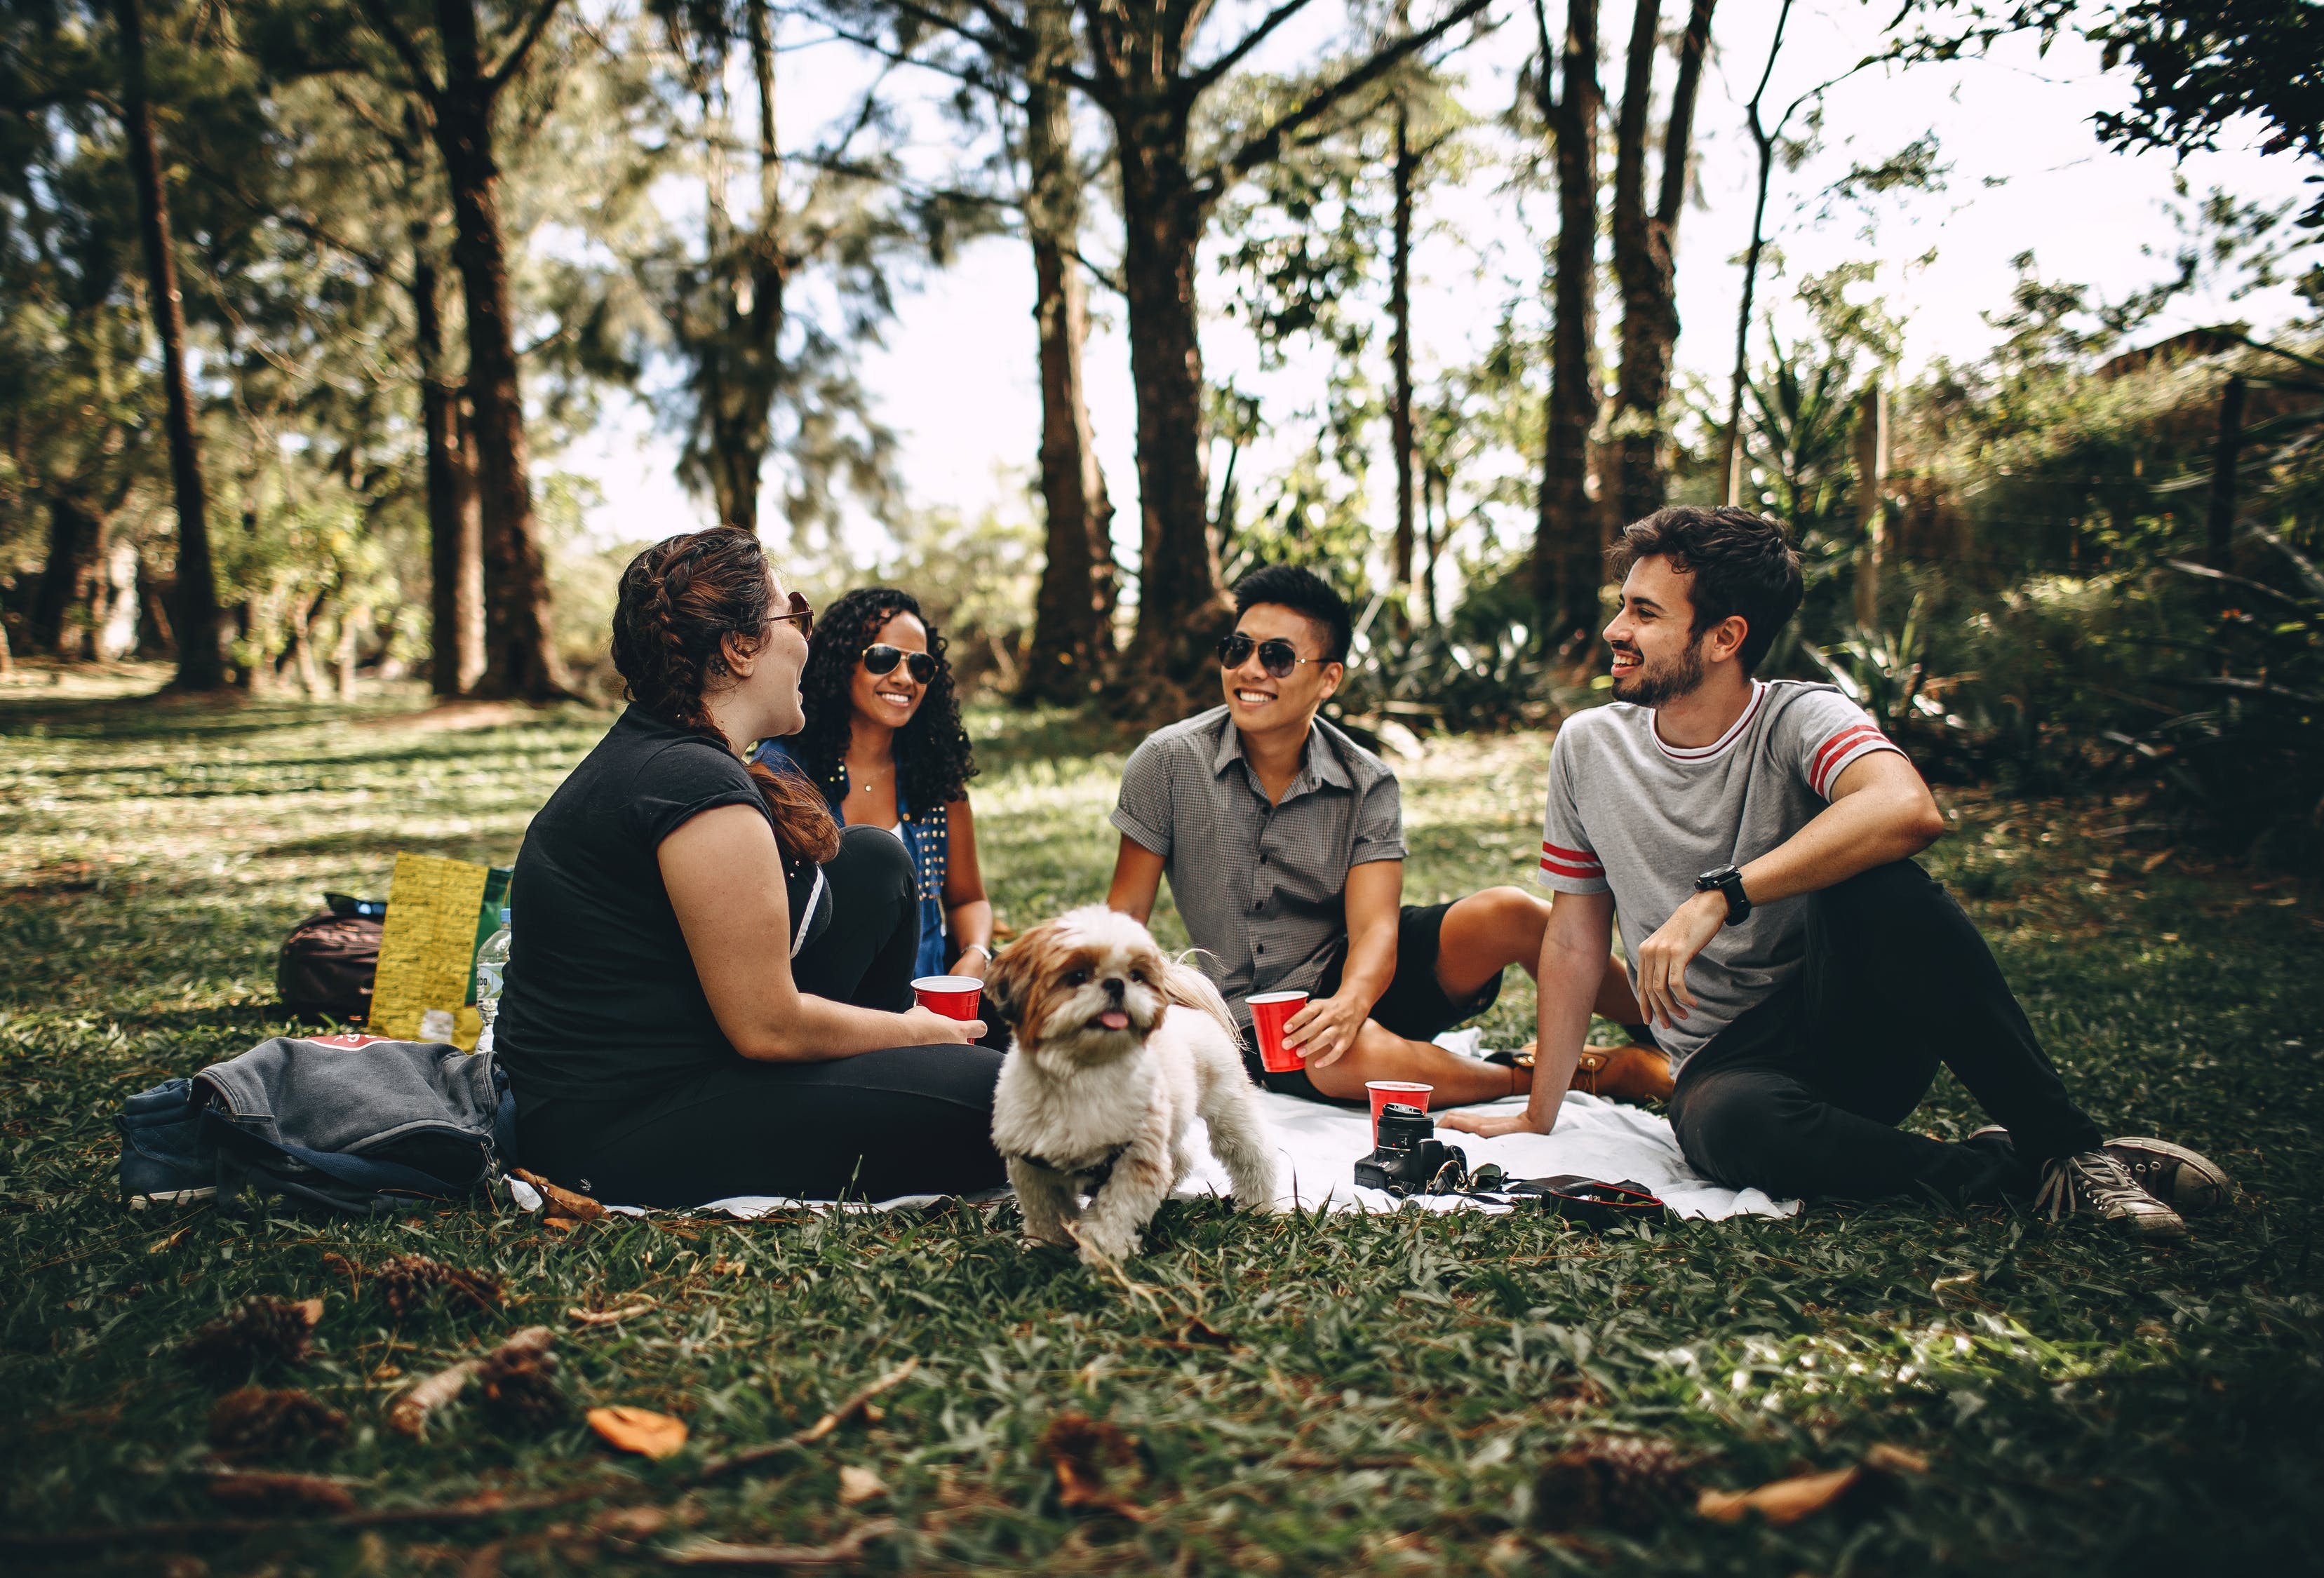 Group of people sitting> </p> <p> Once summer turns to autumn, people return to reality. The vacations are over, and everybody returns to their jobs. But who says that you need to wait for the summer or winter break to go on a trip? Obviously, you can only book so much time off work on an annual basis, but you don't even have to do that in order to go away. You could go on a weekend trip. It'd give you something to look forward to on a regular basis if you planned more weekend getaways with your buddies. So, with that idea in mind, these are some ideas regarding fun trips for you and your friends at weekends. </p> <p> Heading out on the open road. </p> <p> <a href=